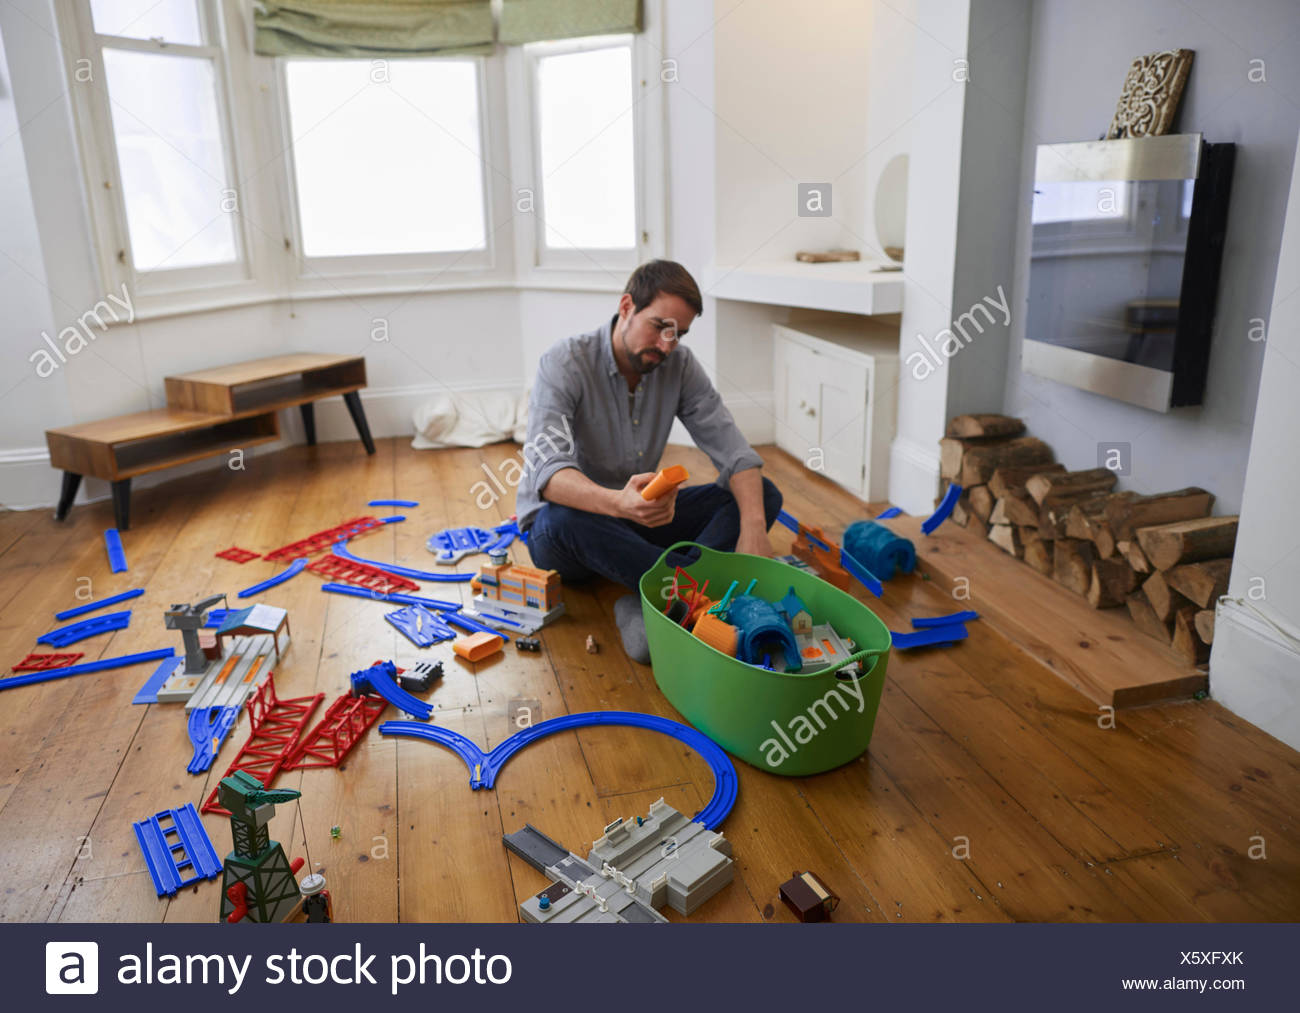 Mid adult man contemplating toys scattered in living room - Stock Image